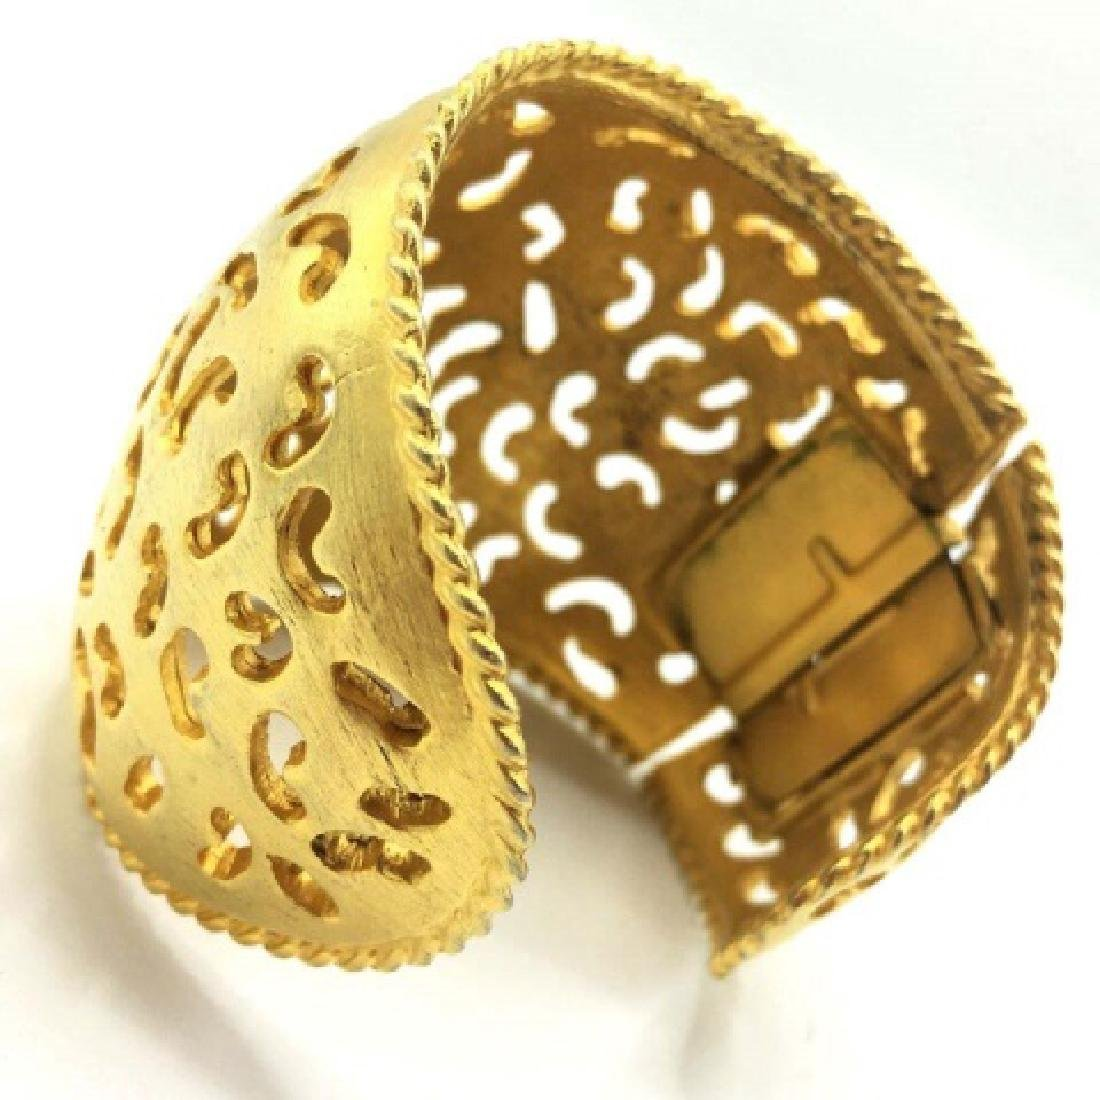 Vintage Costume Gold-Tone Cut-Out Cuff - 2